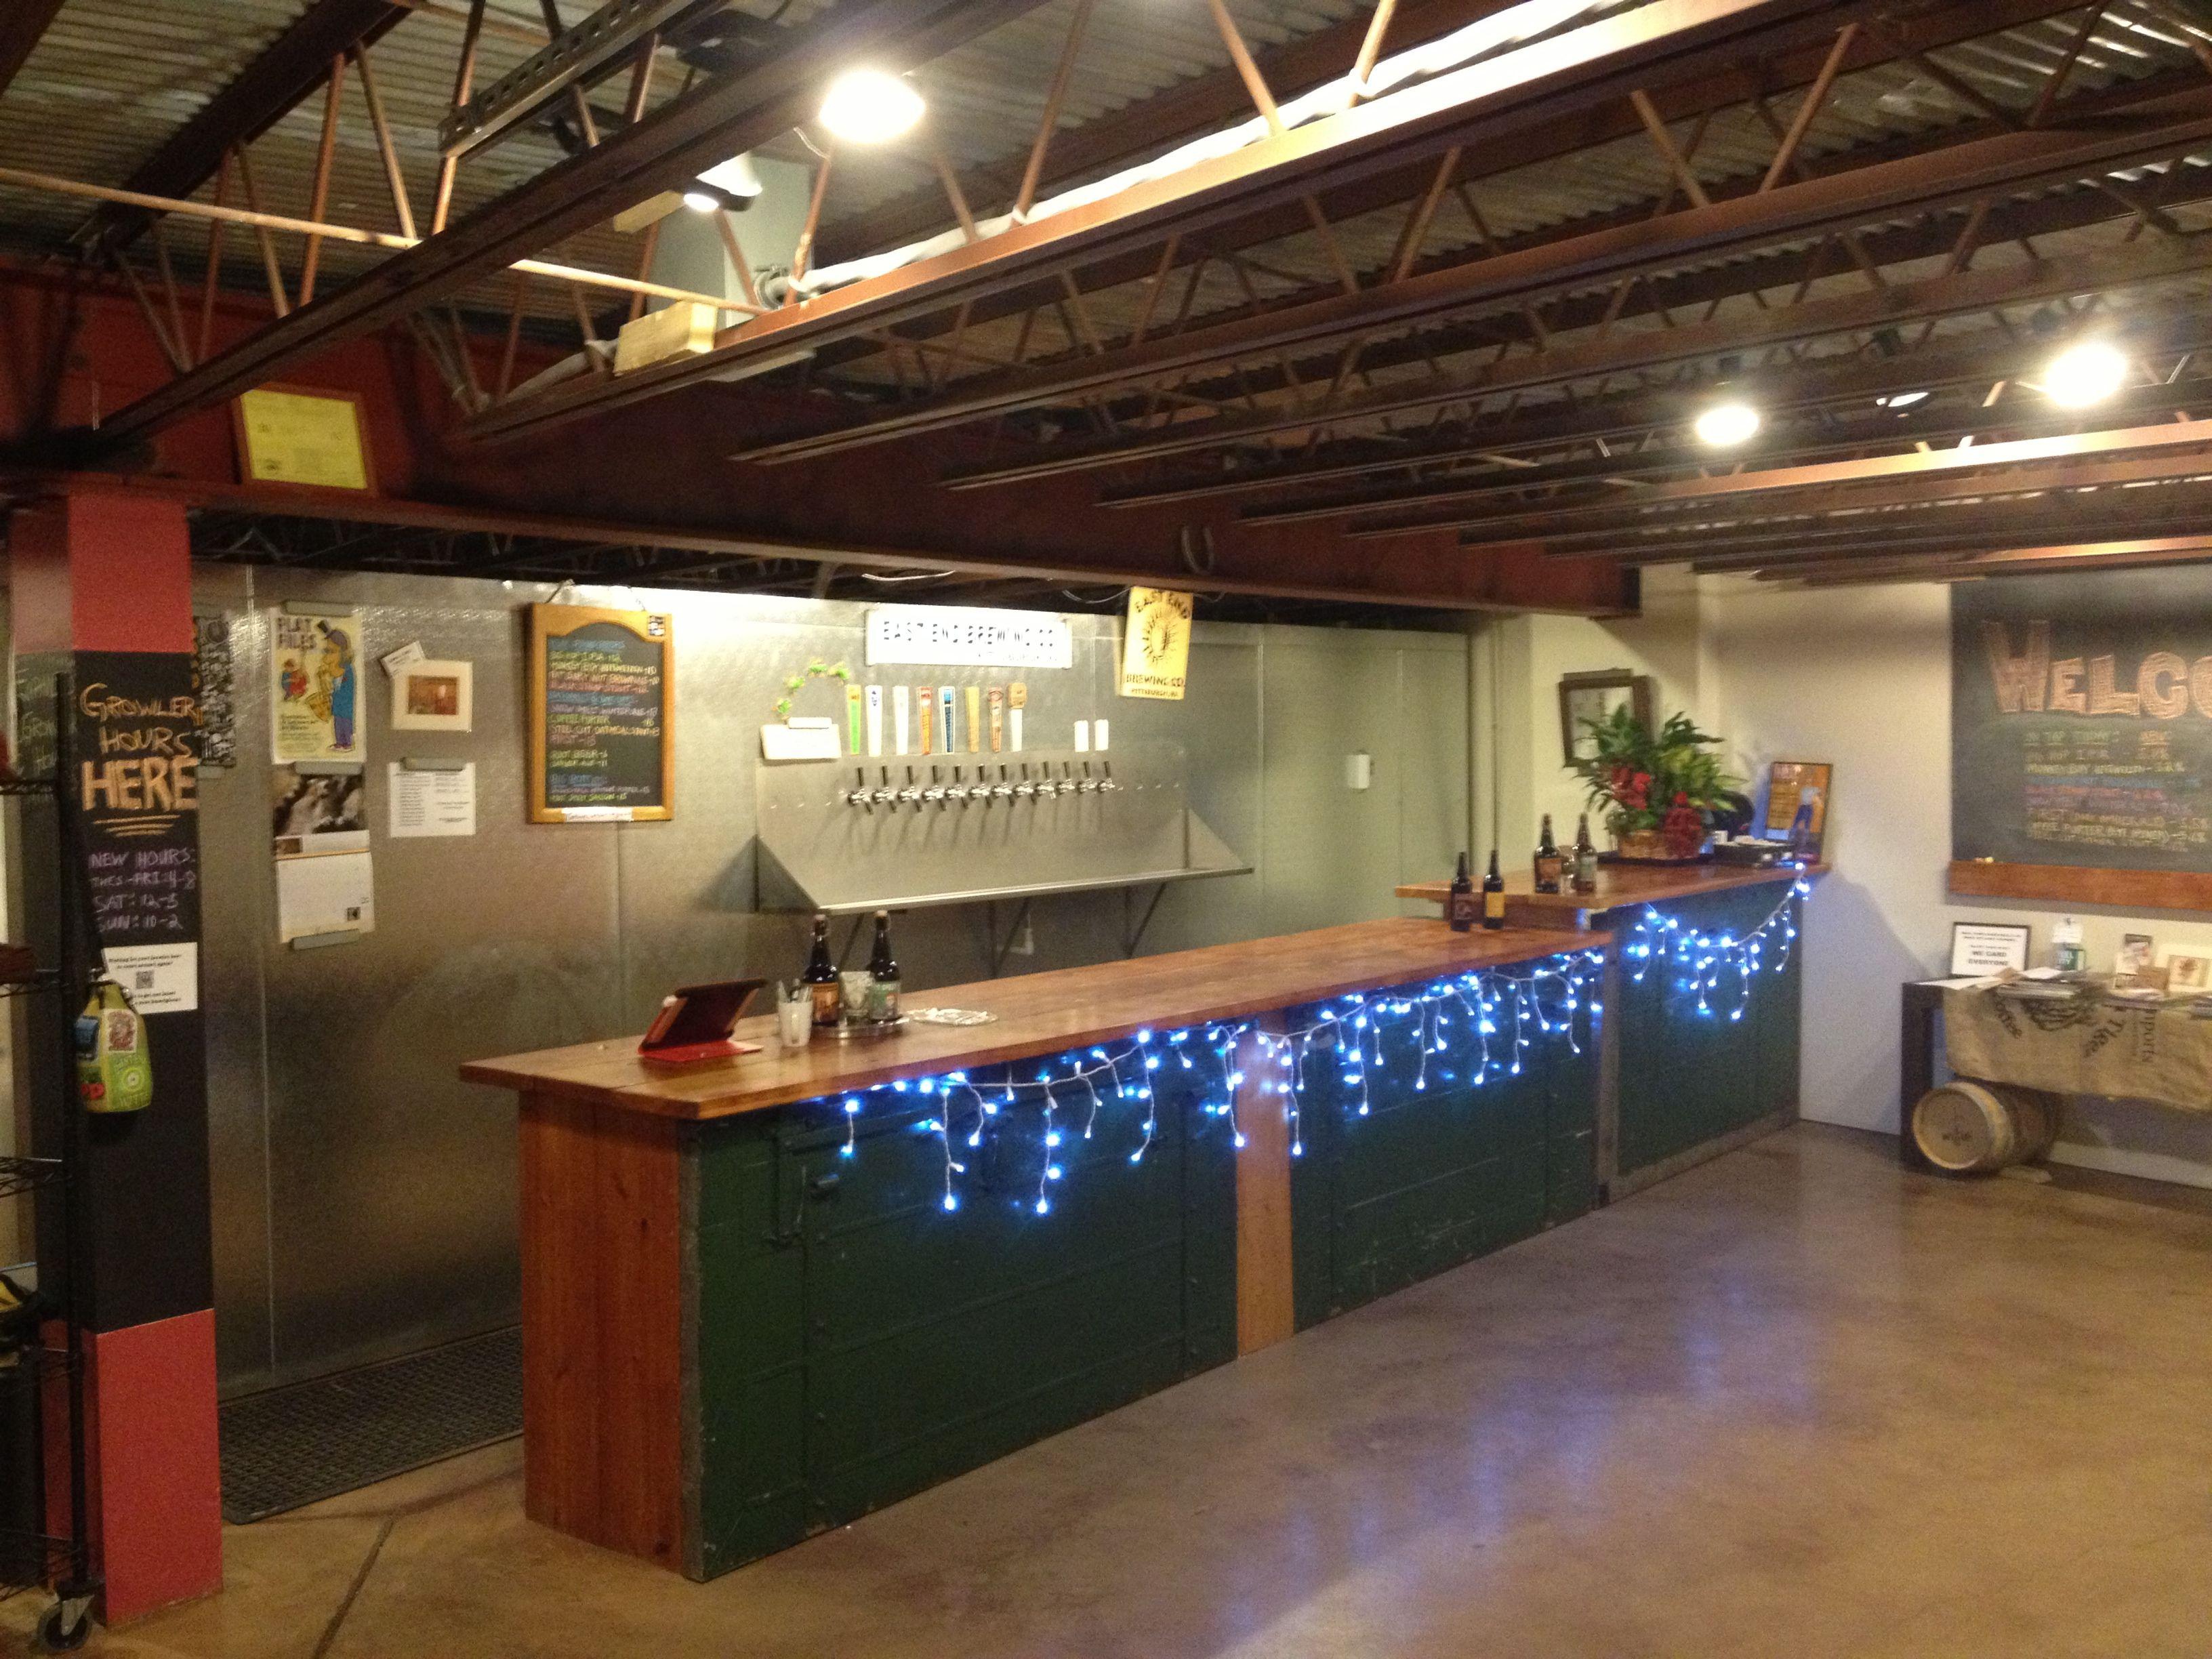 East end brewing company home home decor brewing